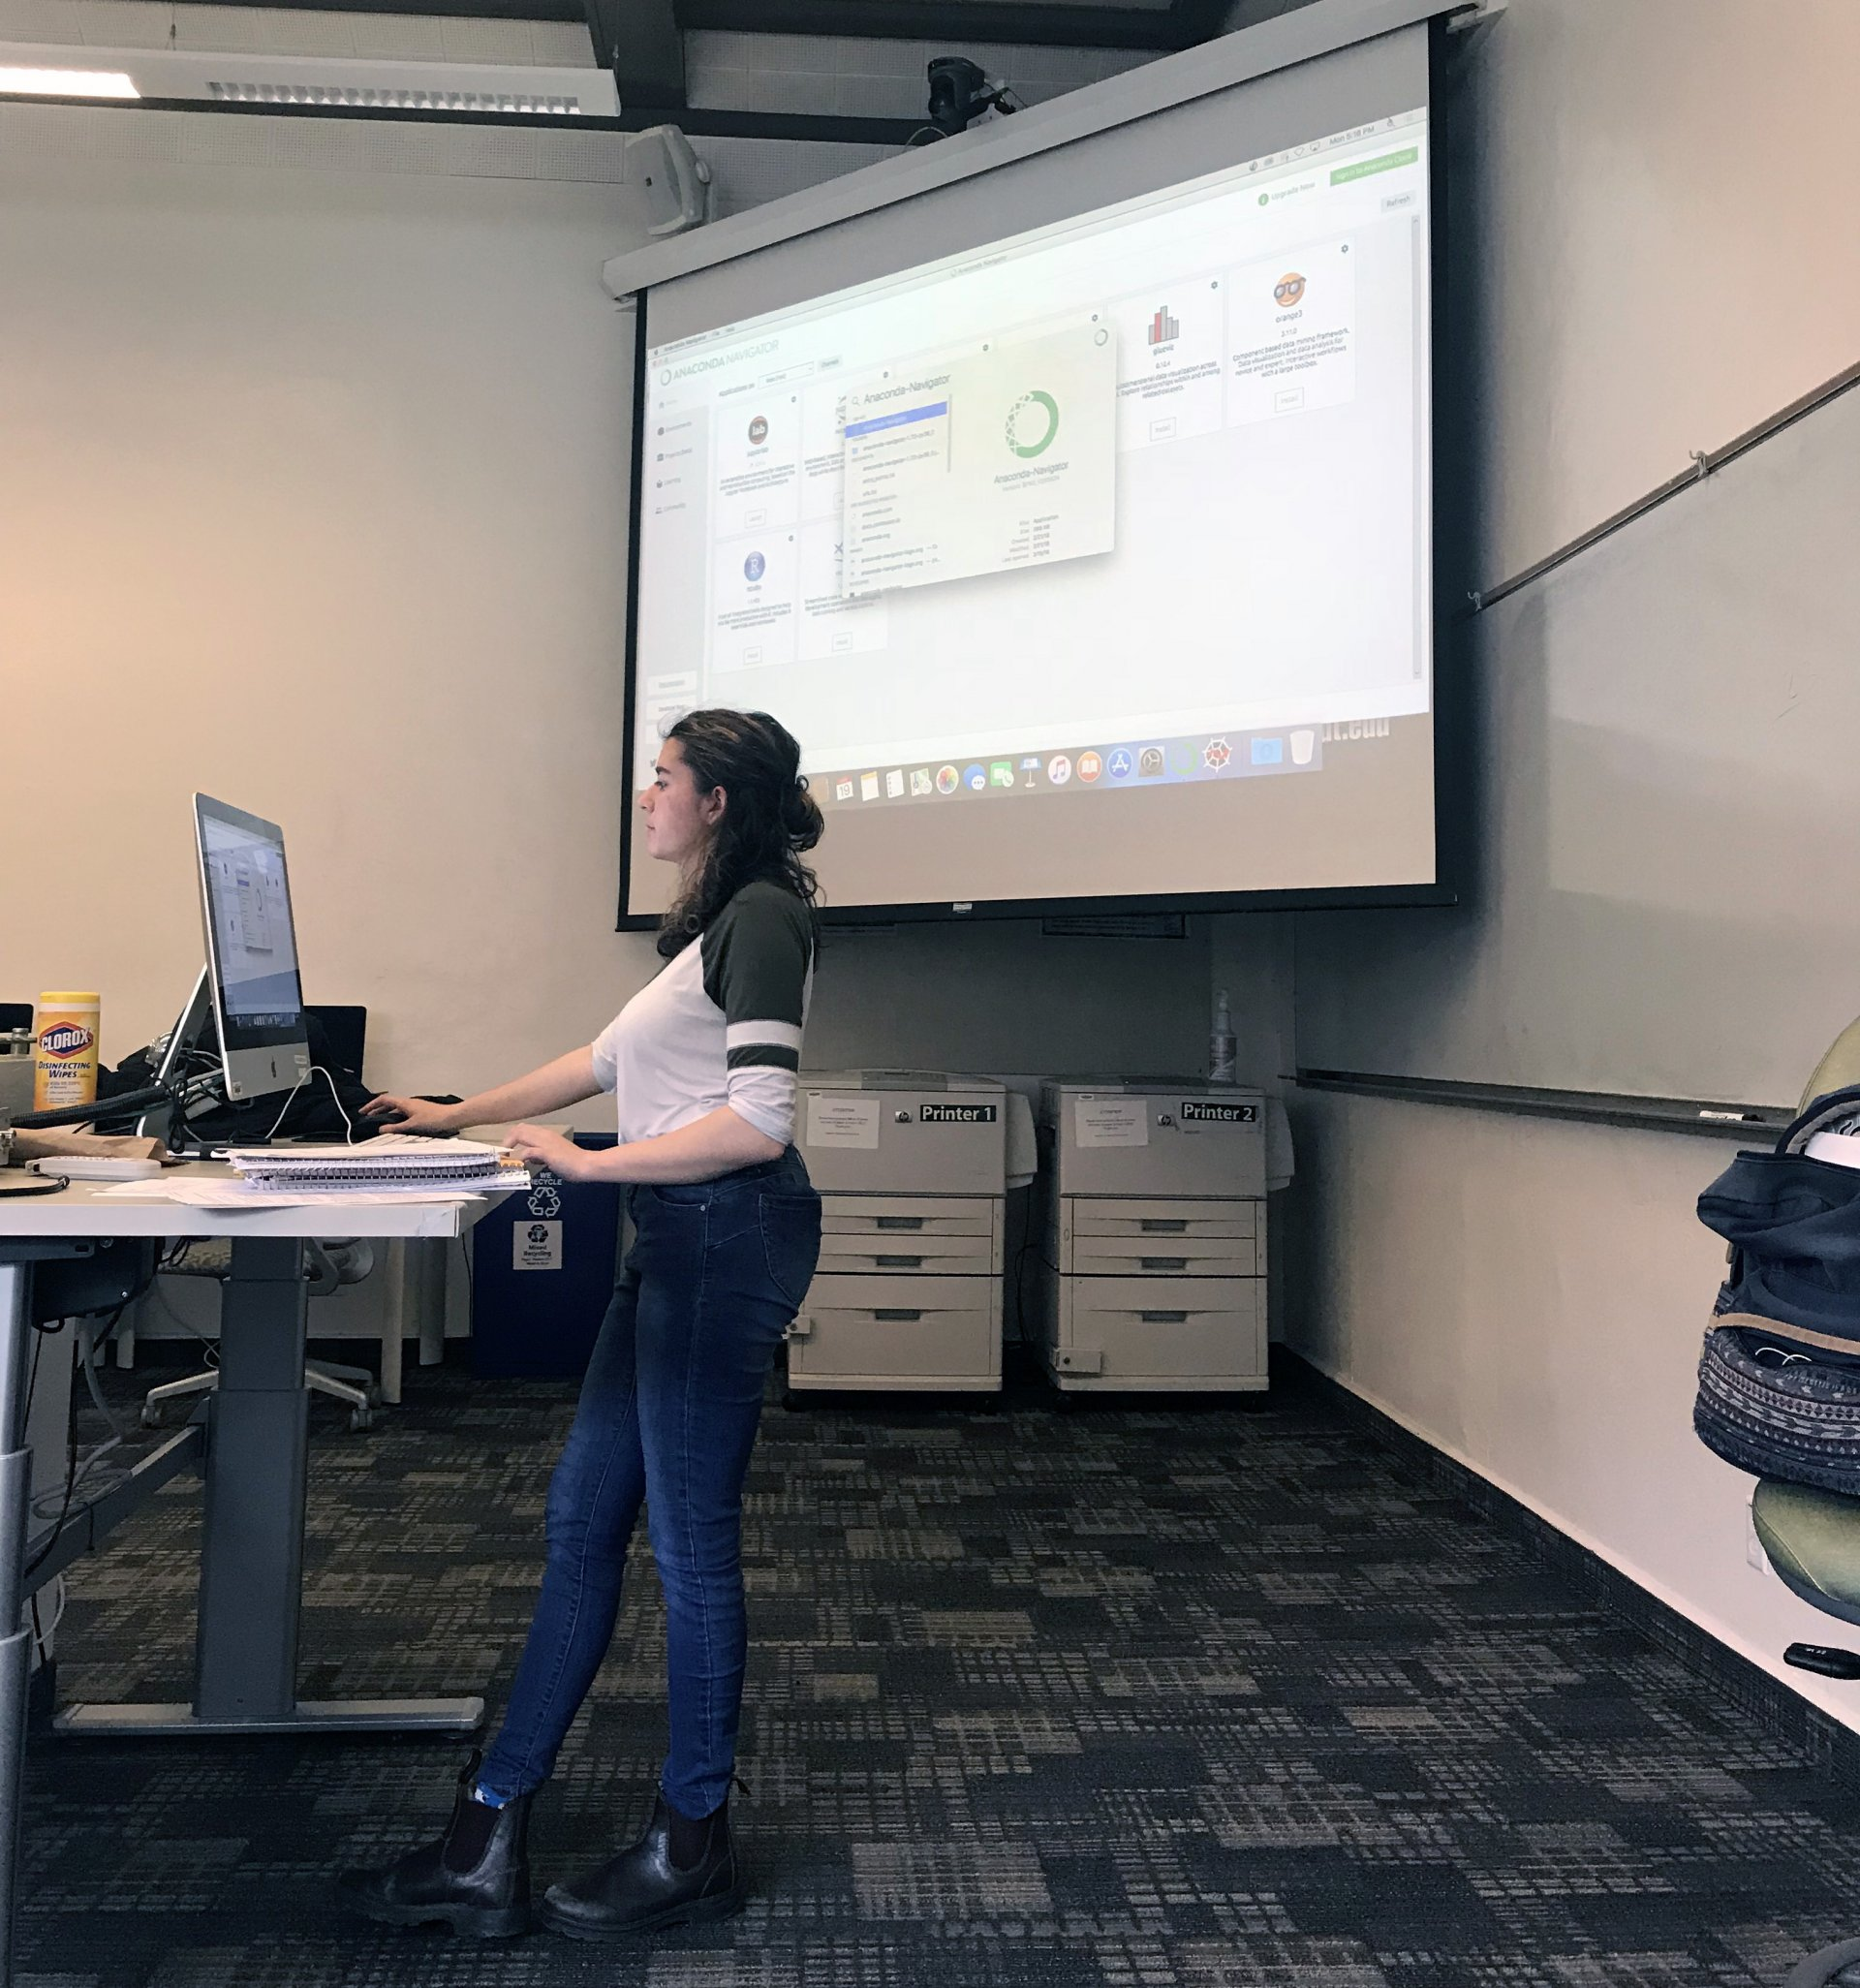 Kayleigh Migdol leads workshops on coding every Monday and Wednesday from 5-6 p.m. in Gist Hall 215. Photo by Emily Owen.